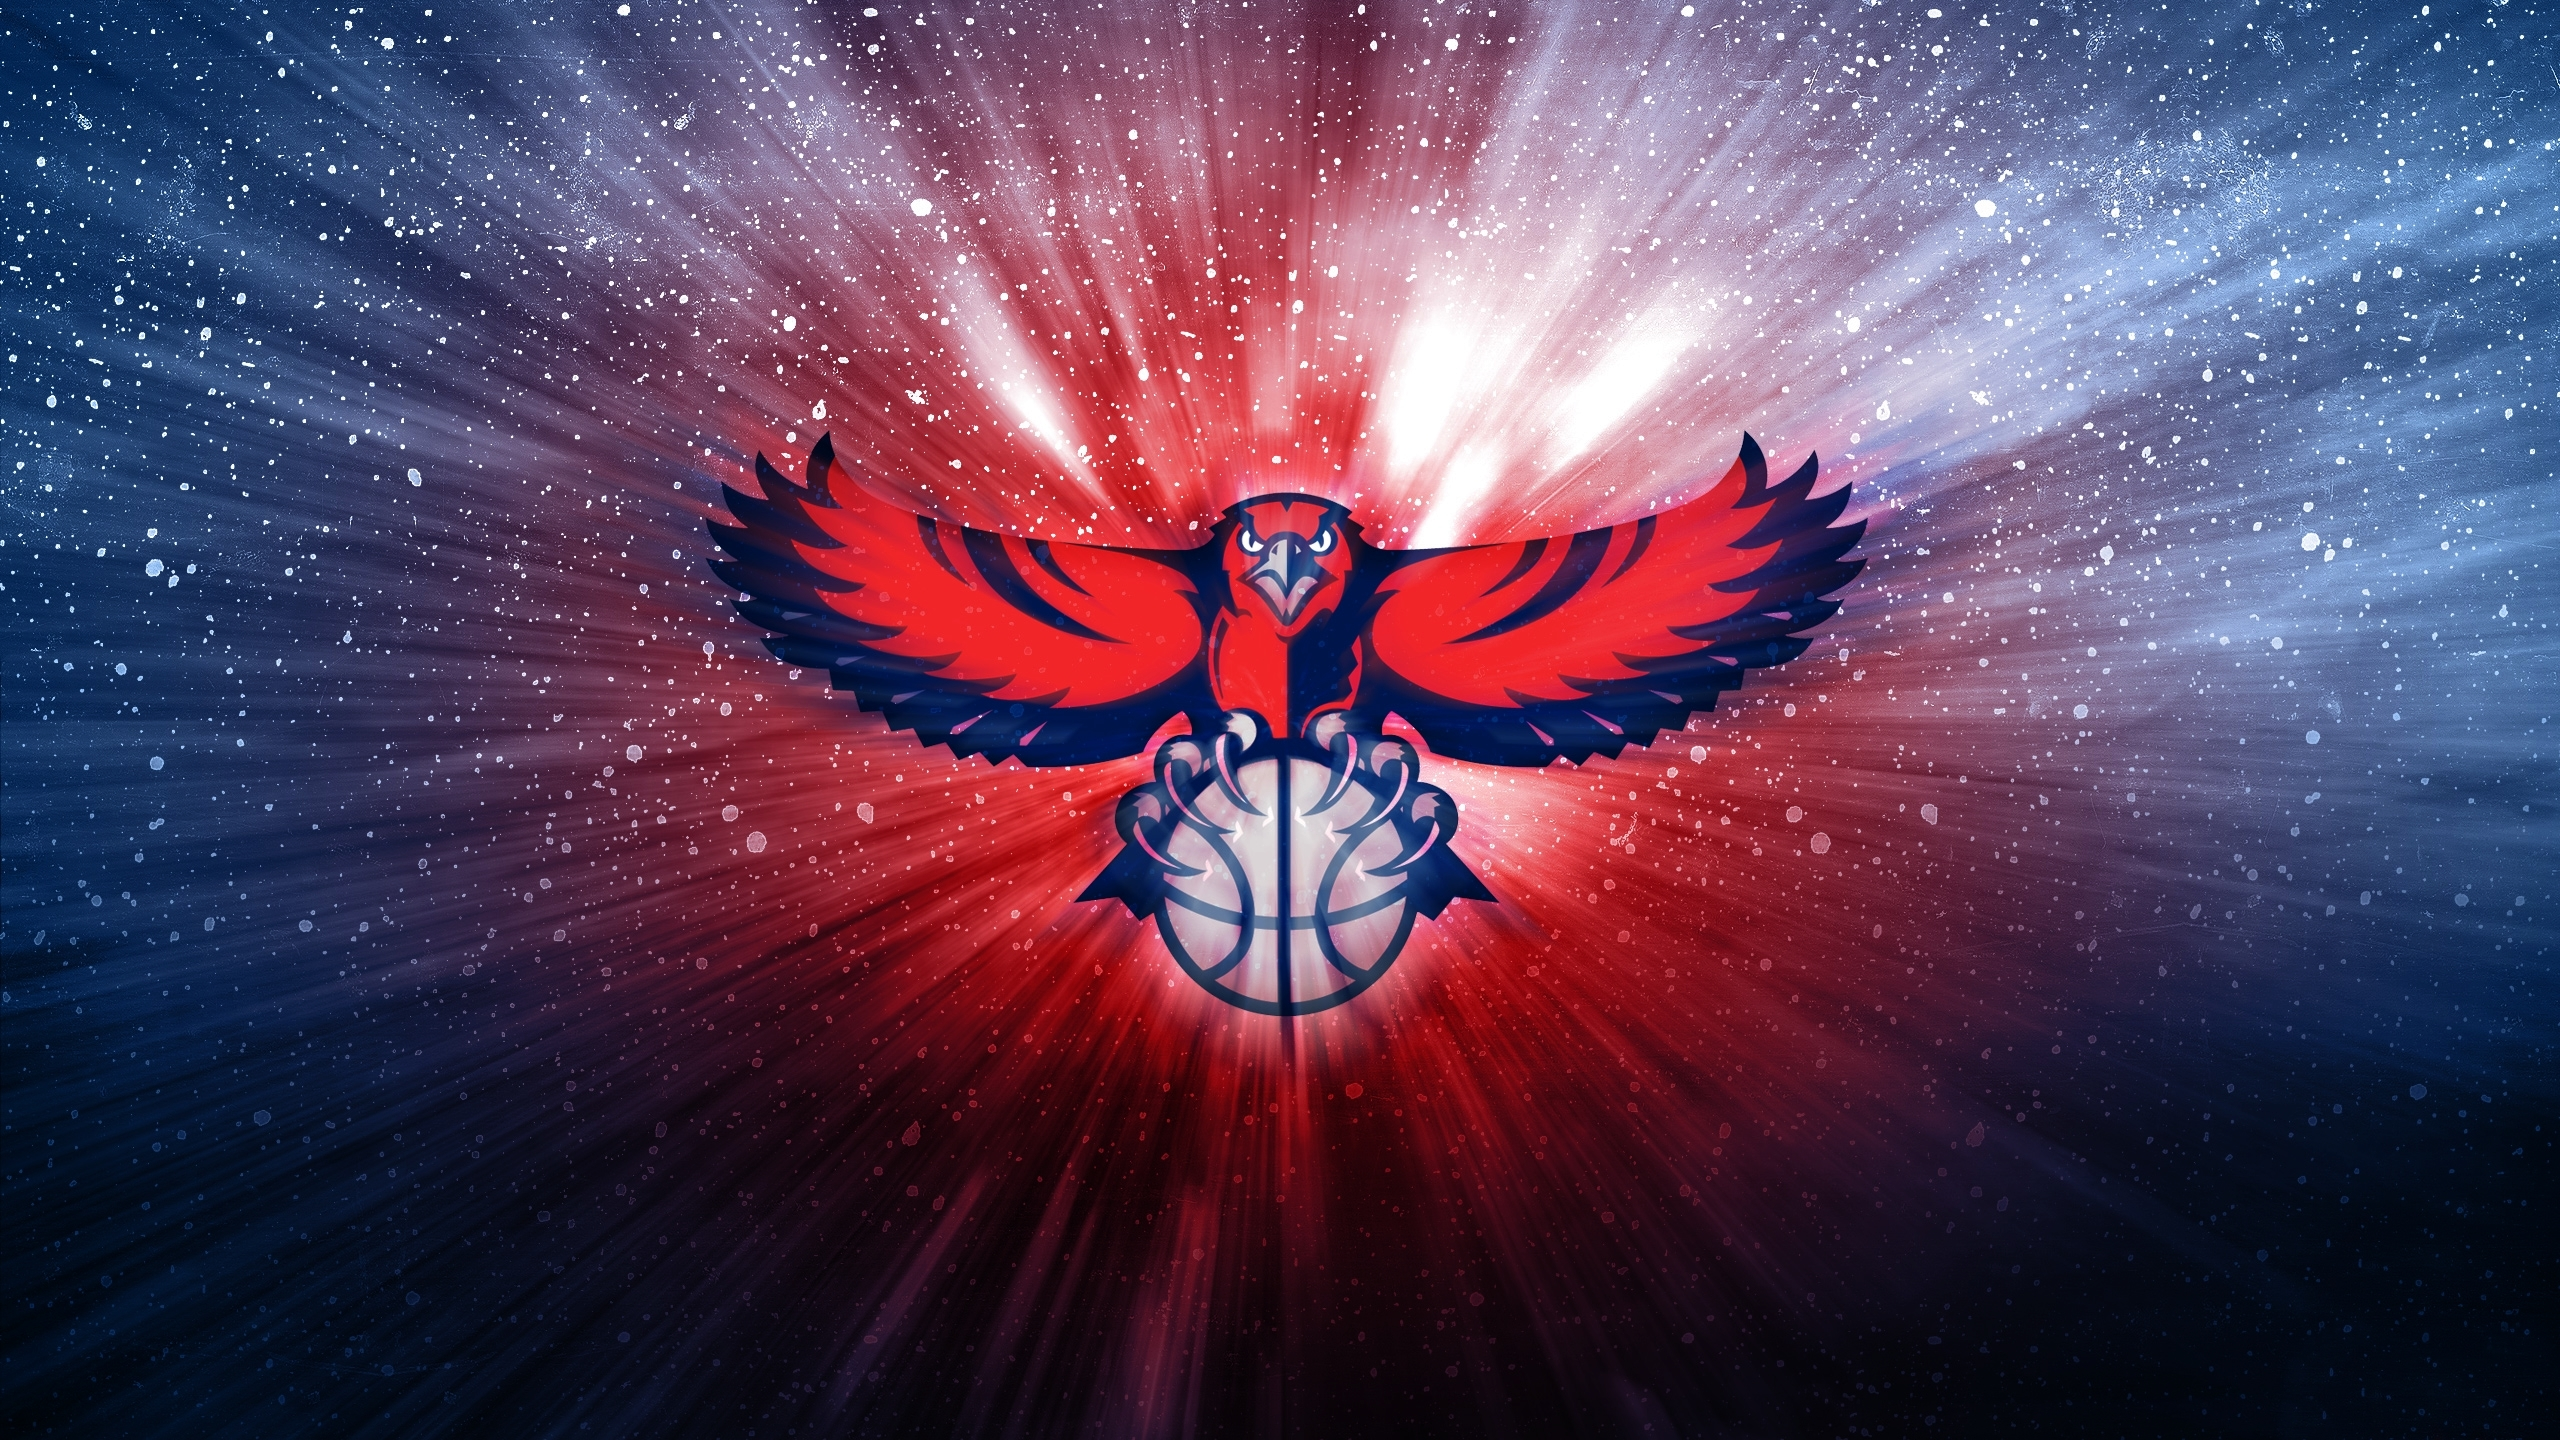 Atlanta hawks wallpaper iphone